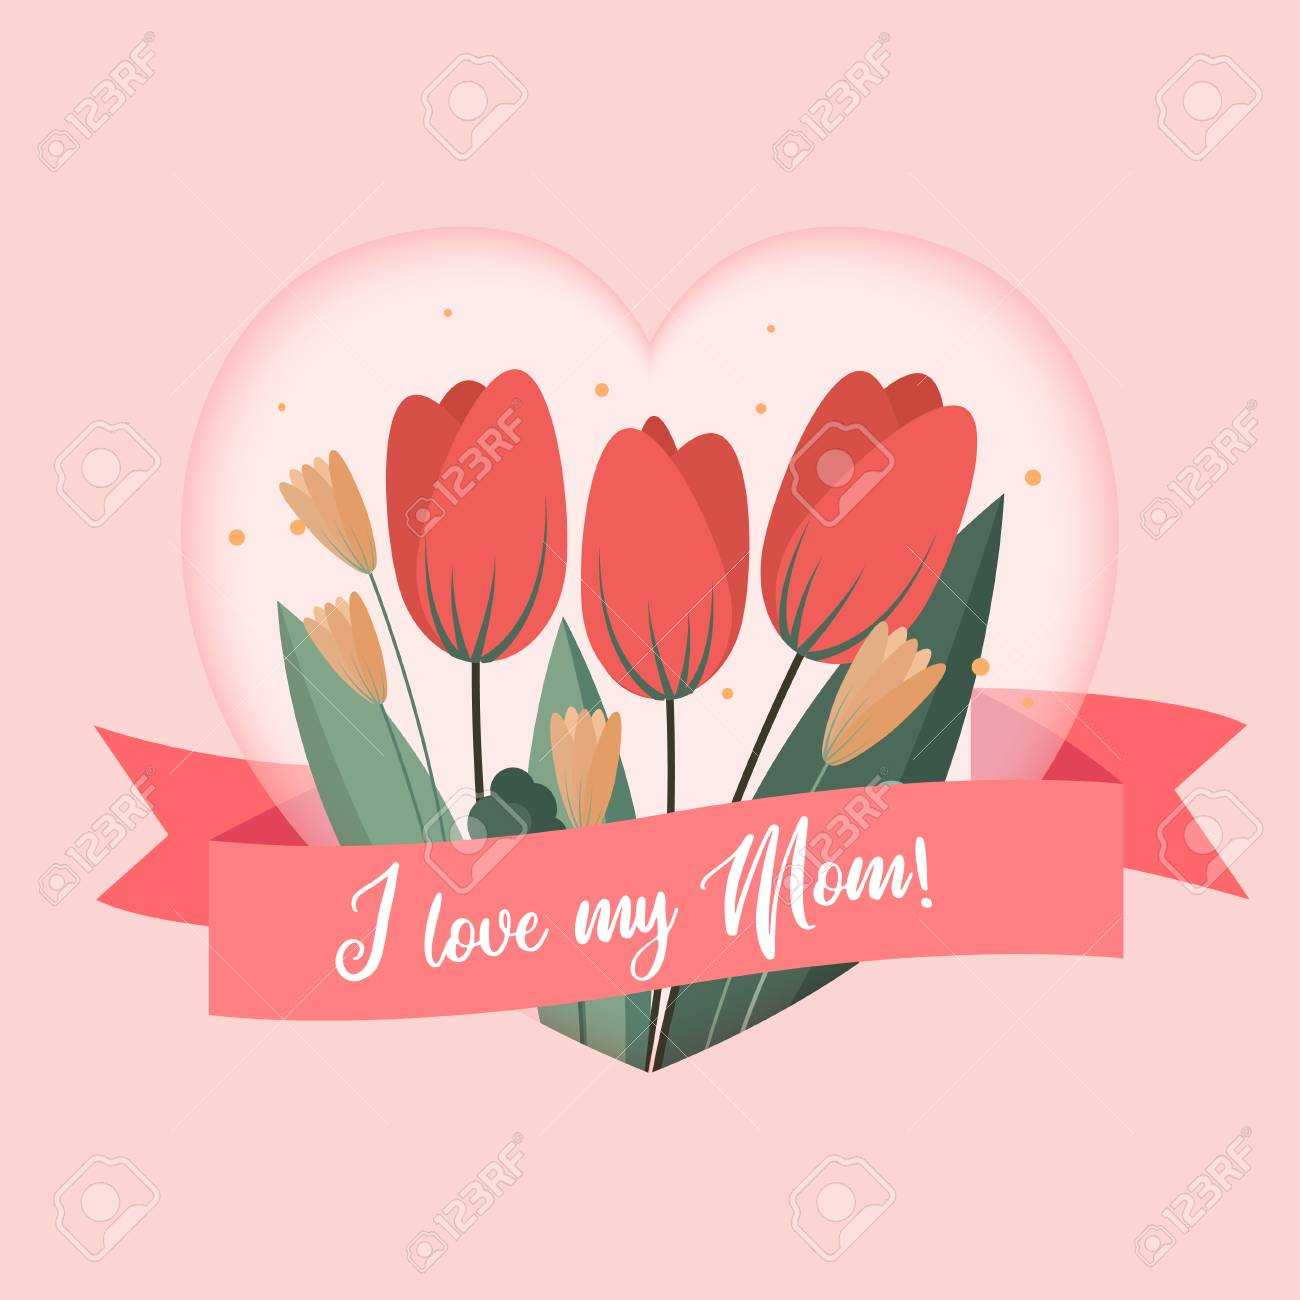 I Love My Mom Greetings Card Template. Background Design To Mothers.. throughout Mom Birthday Card Template